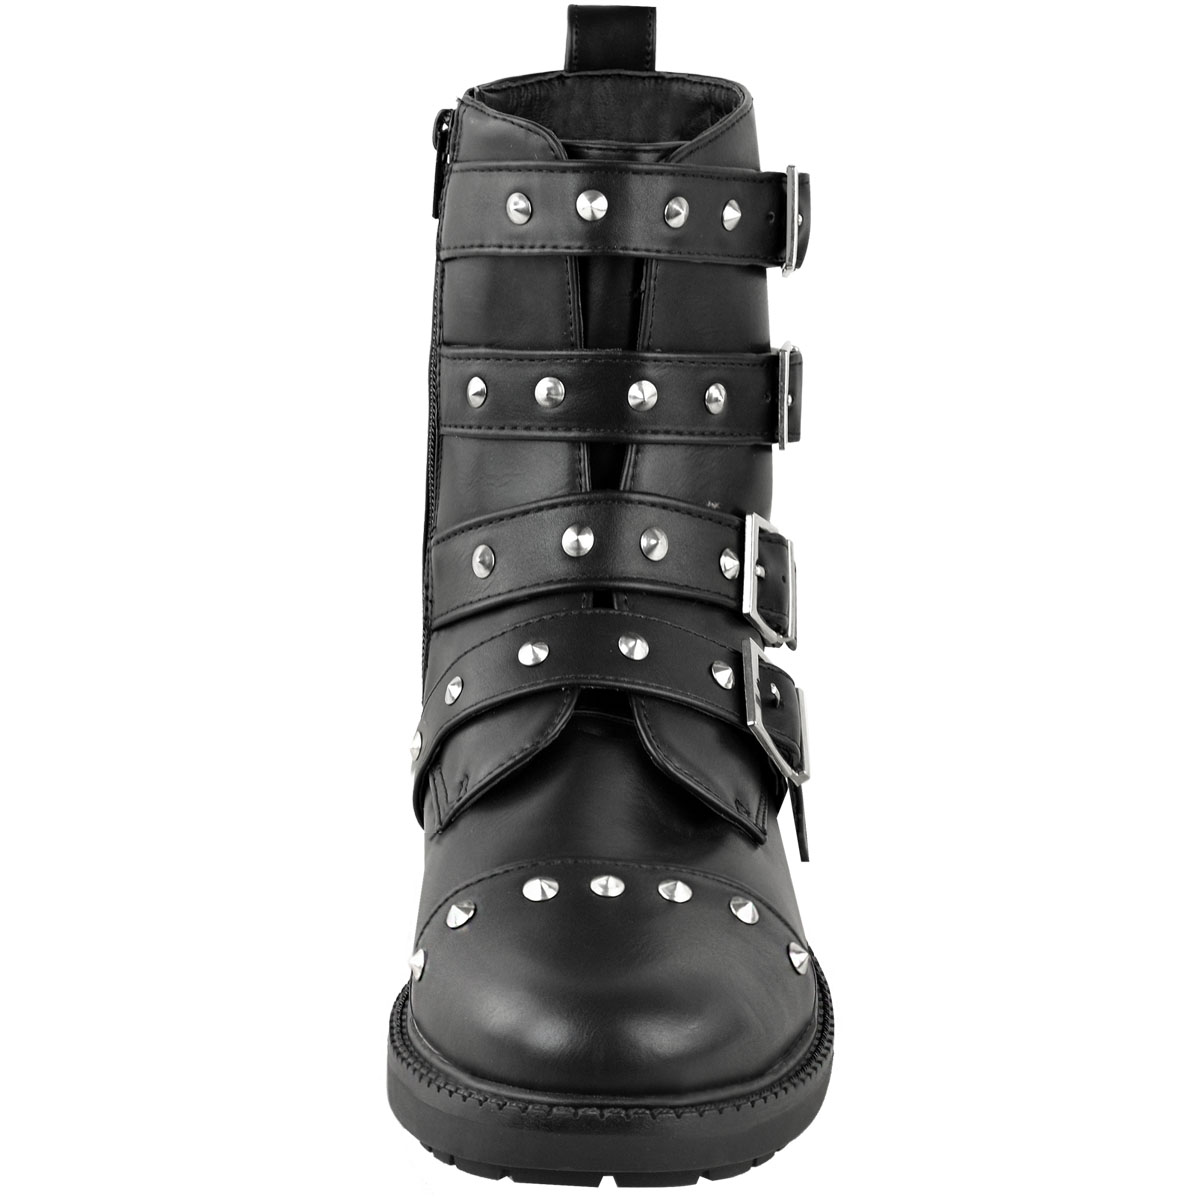 Womens Ankle Boots Ladies Army Combat Flat Grip Sole Studded Buckle Shoes Size